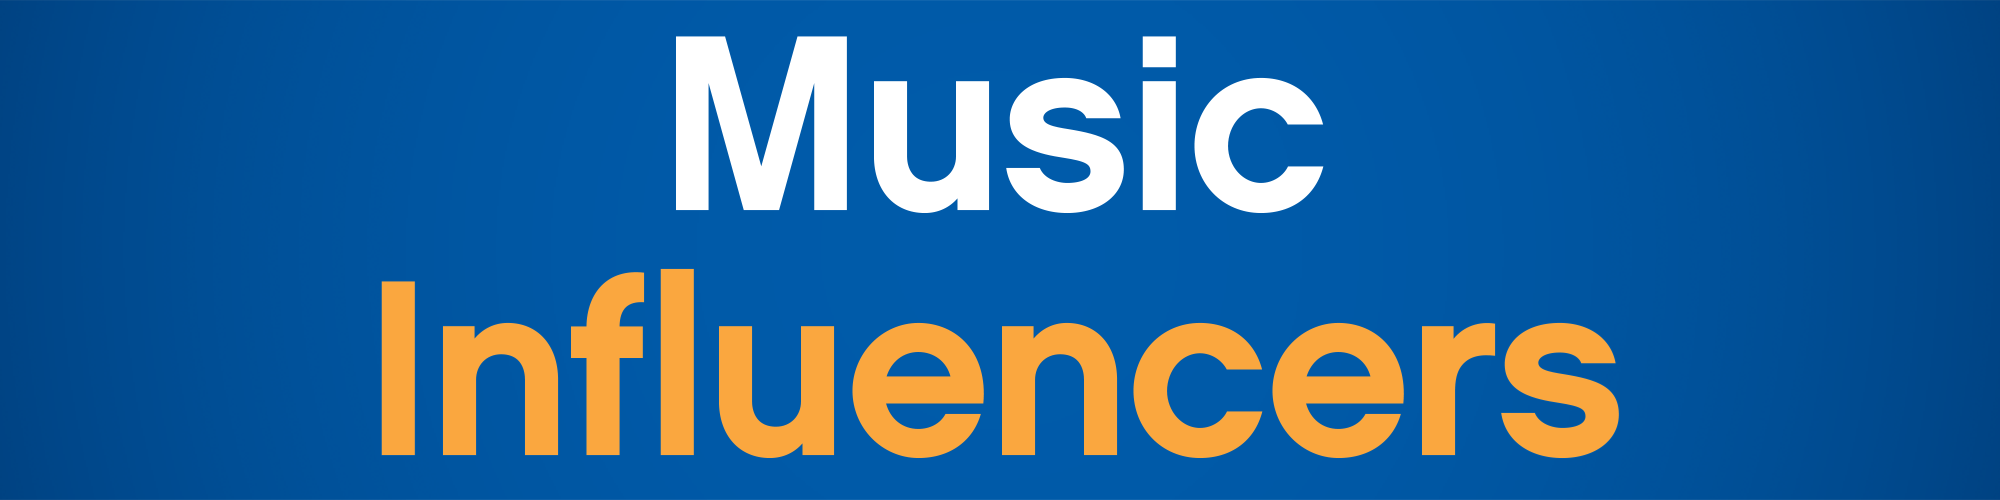 MAJIC-Music-Influencers_contest-ultra-wide-top-image-2000x500